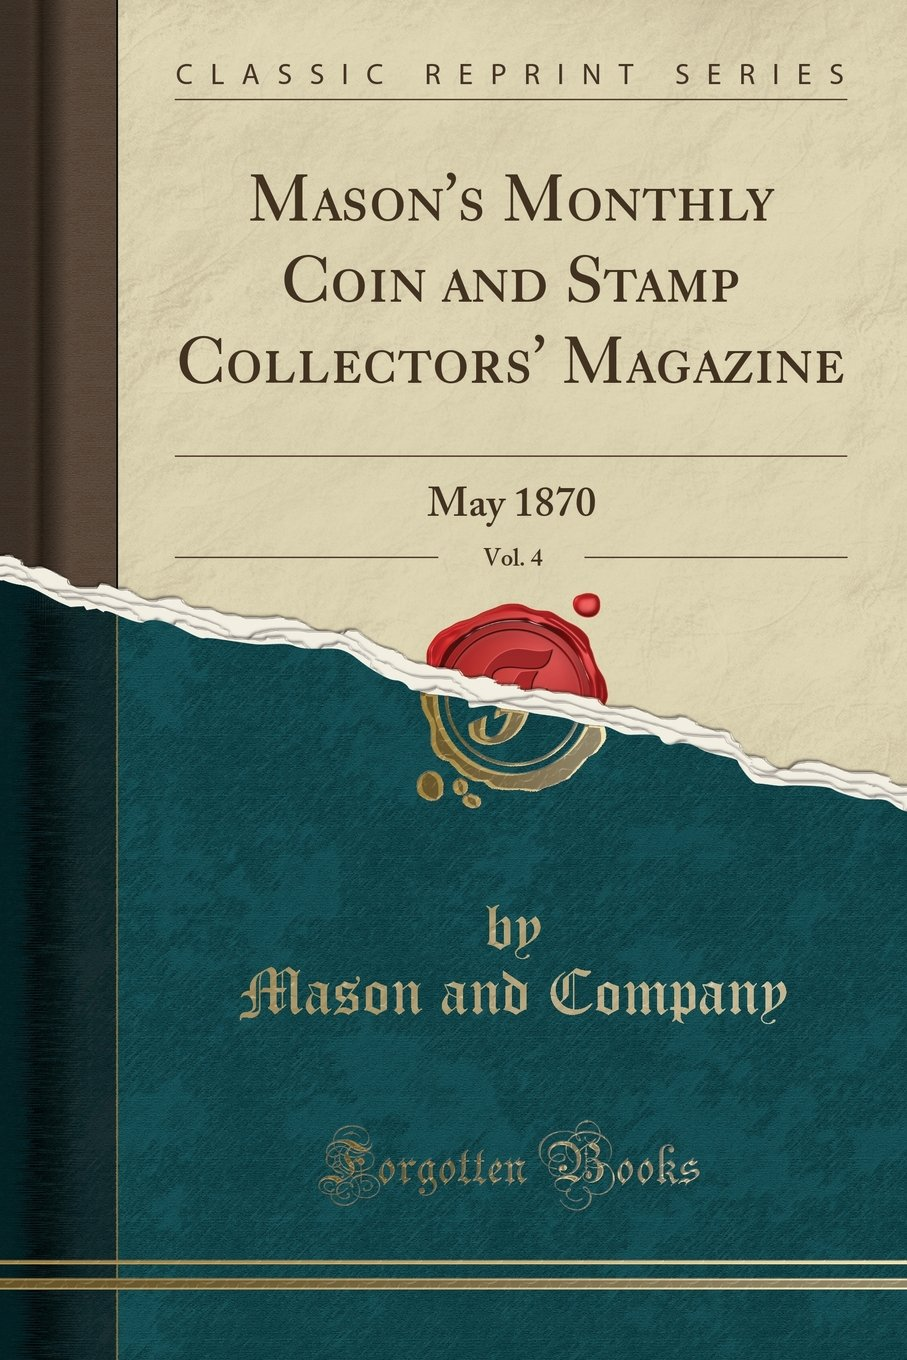 Mason's Monthly Coin and Stamp Collectors' Magazine, Vol. 4: May 1870 (Classic Reprint) ebook